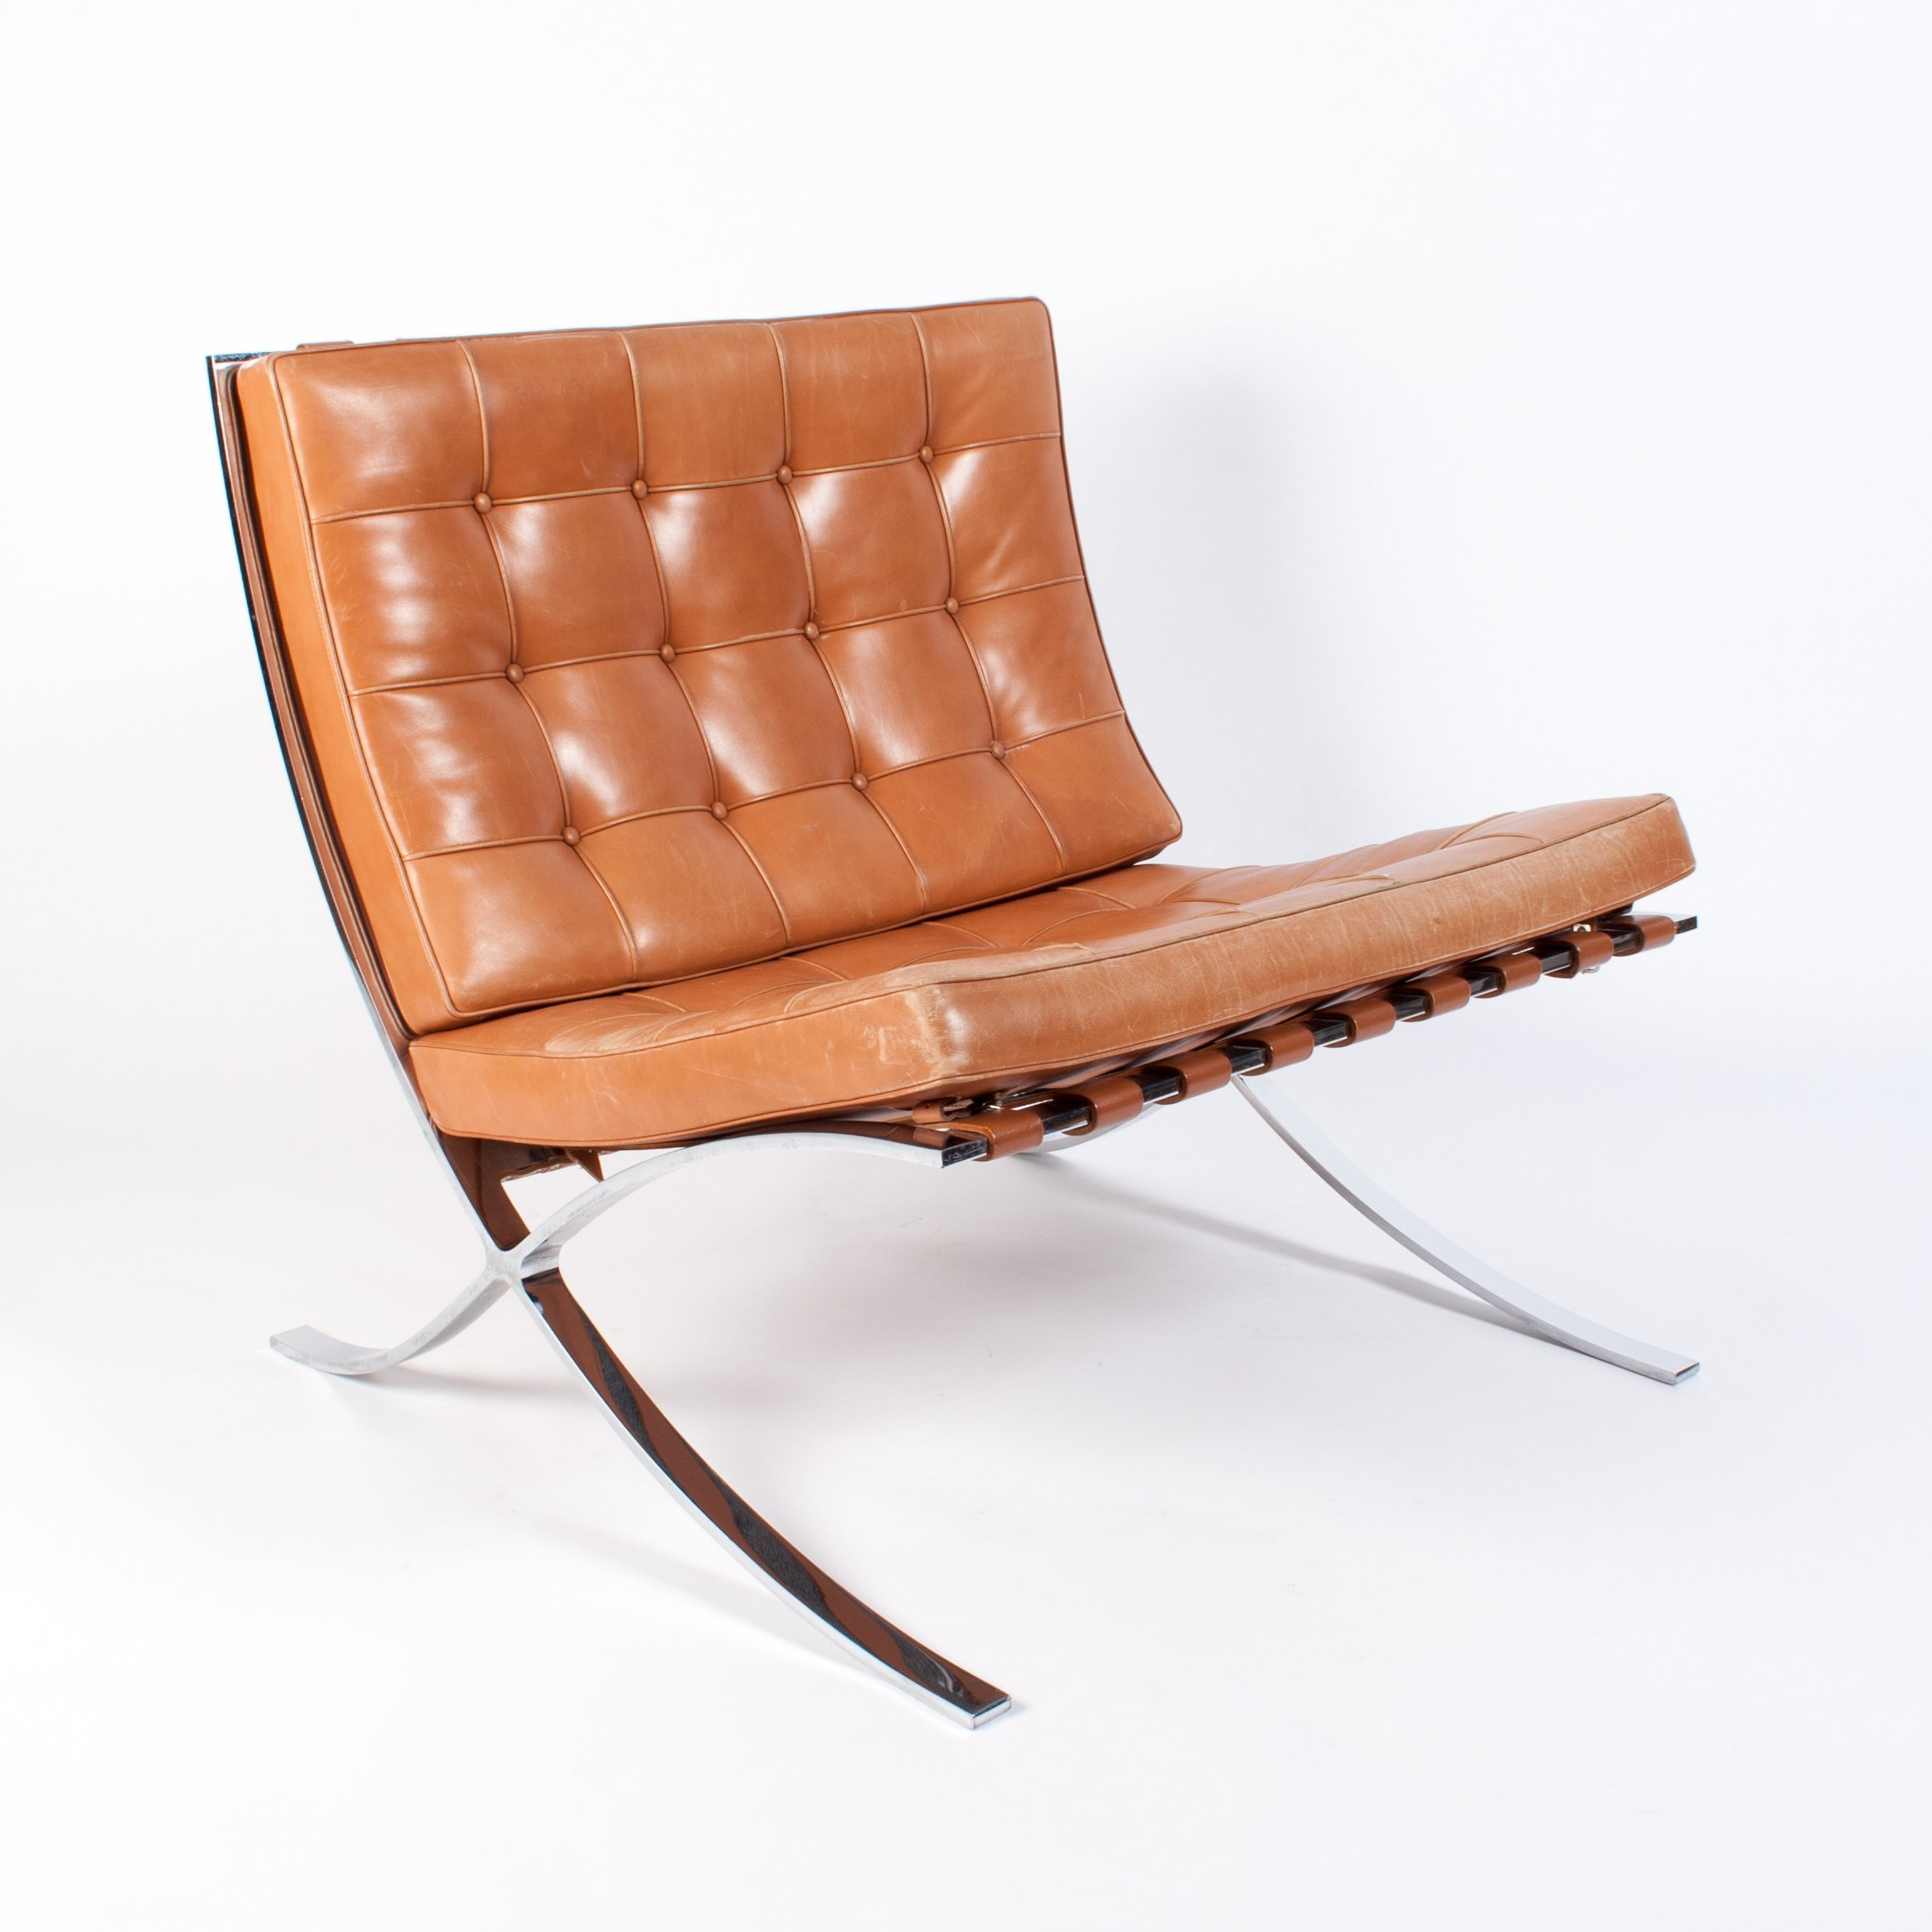 Cognac Leather Barcelona Chair By Ludwig Mies Van Der Rohe For Knoll 1990s 84021